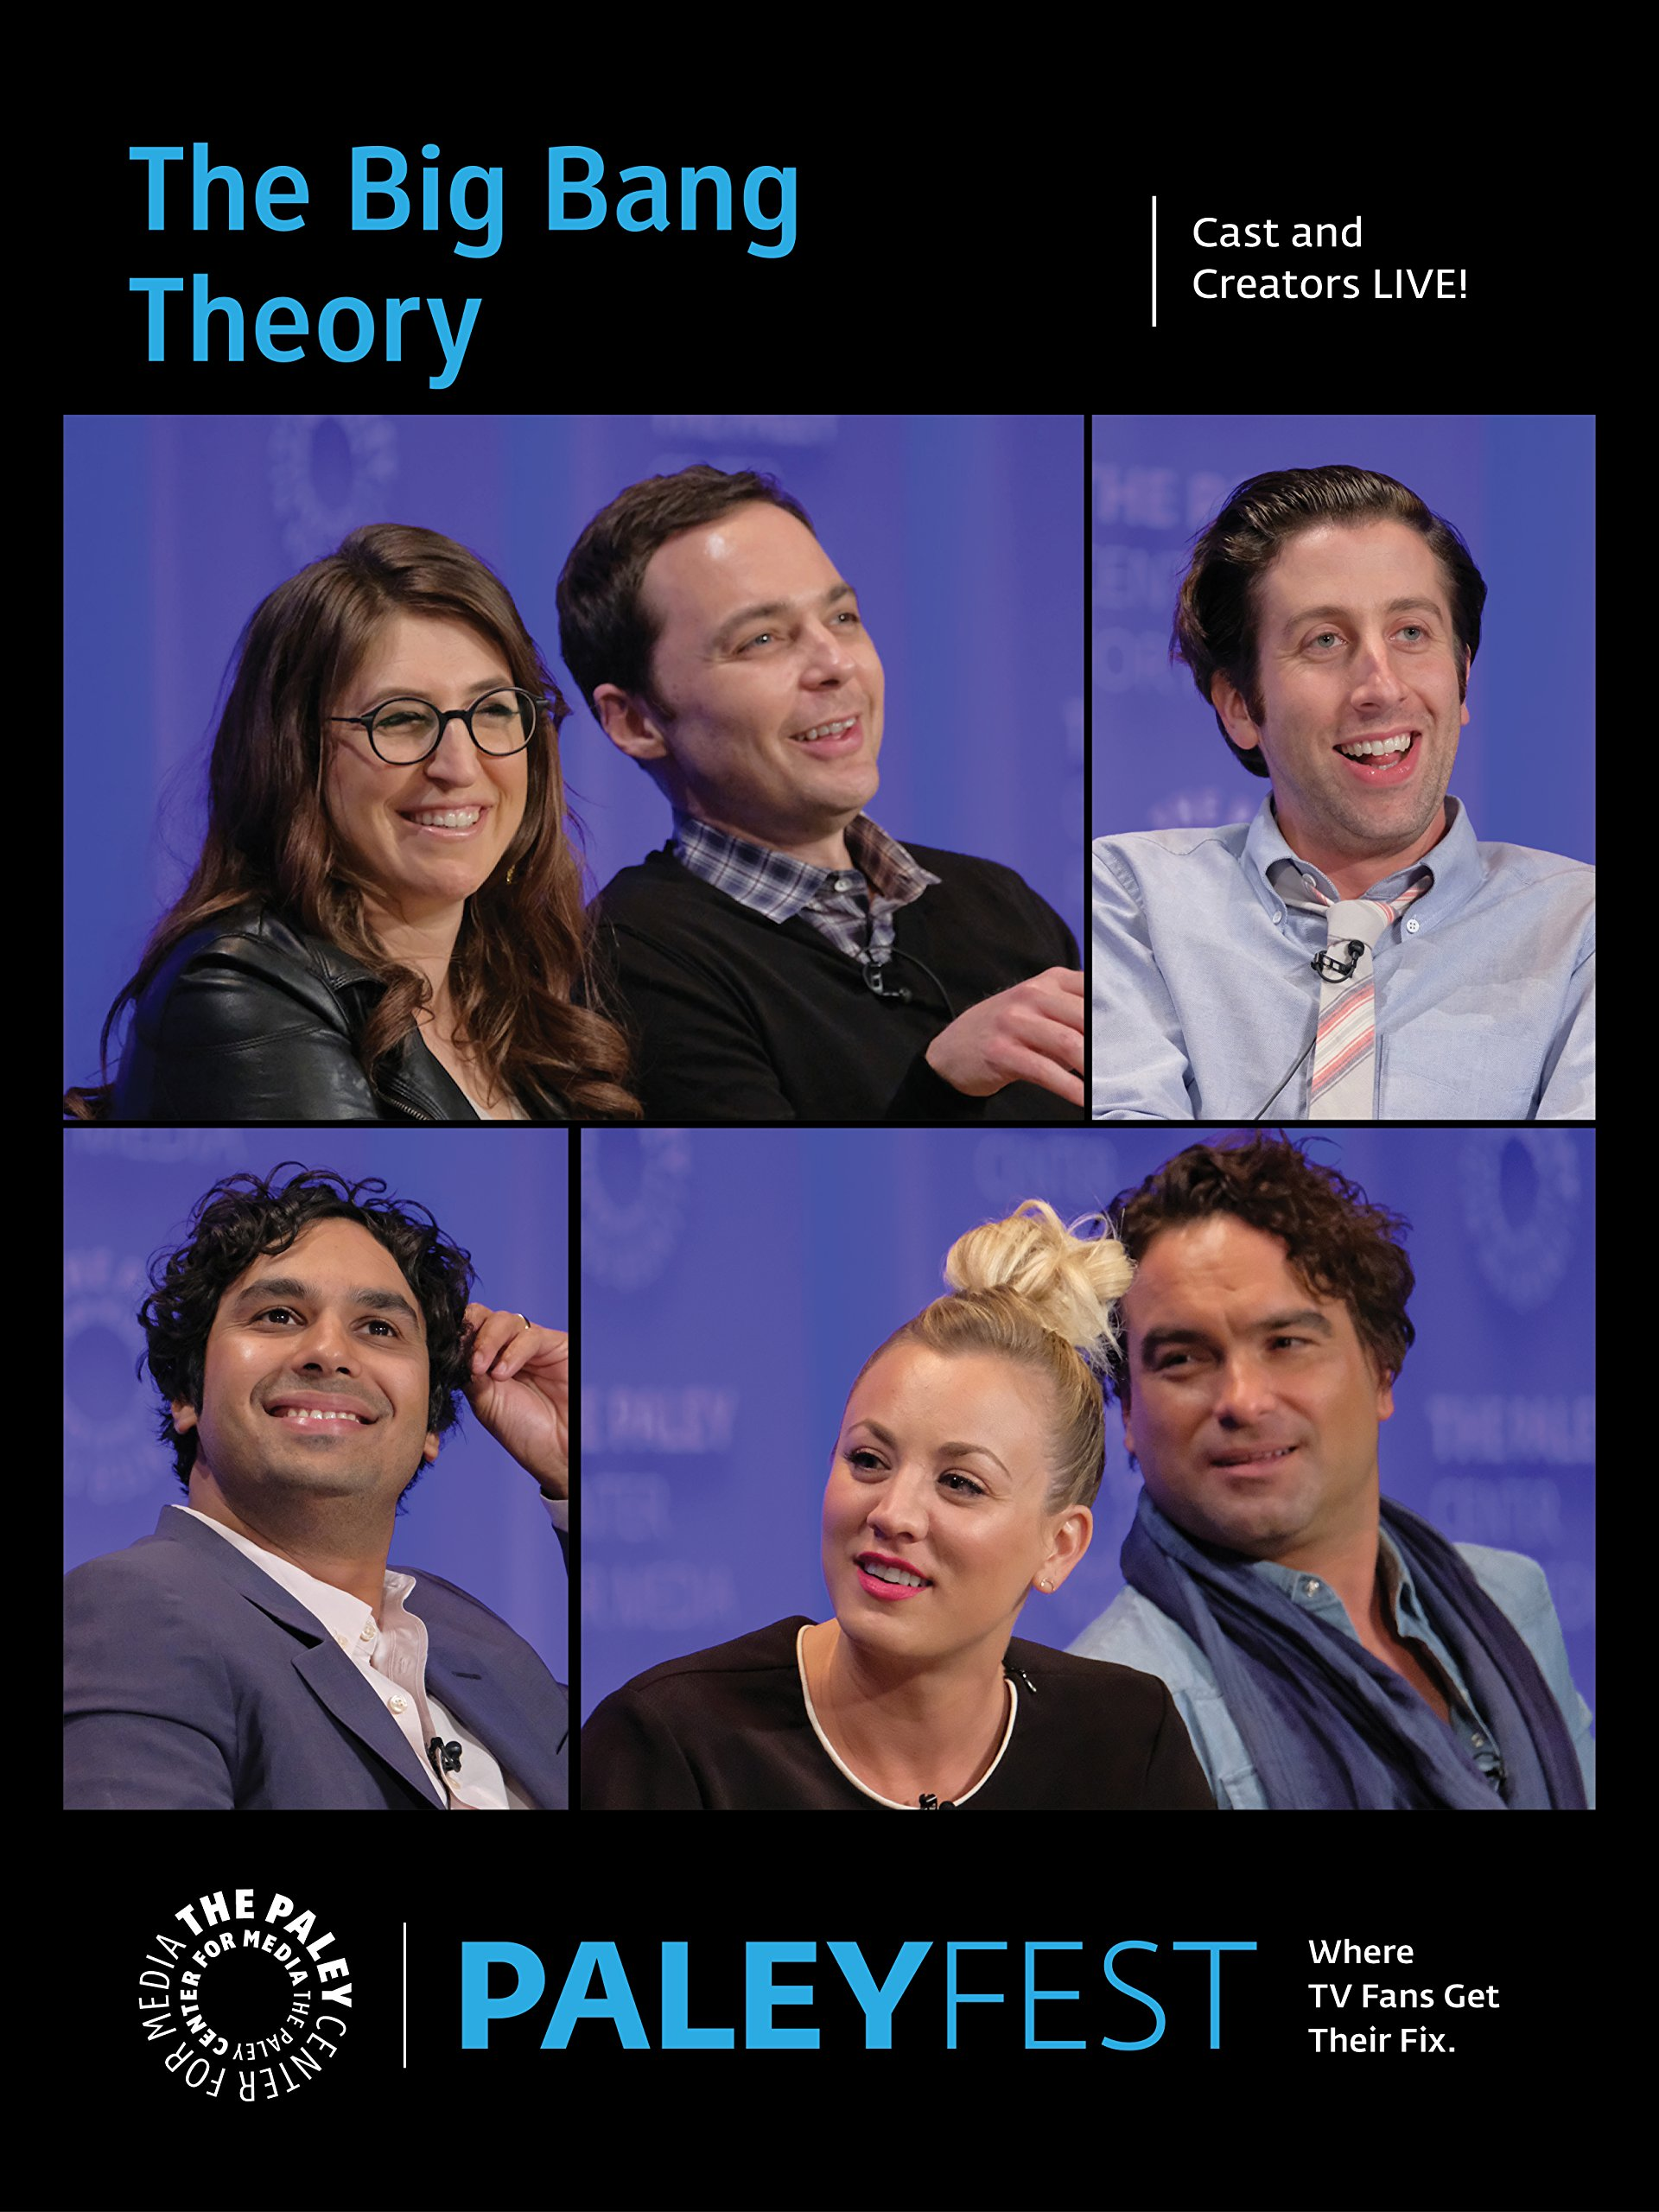 Watch The Big Bang Theory Cast And Creators Paleyfest On Amazon